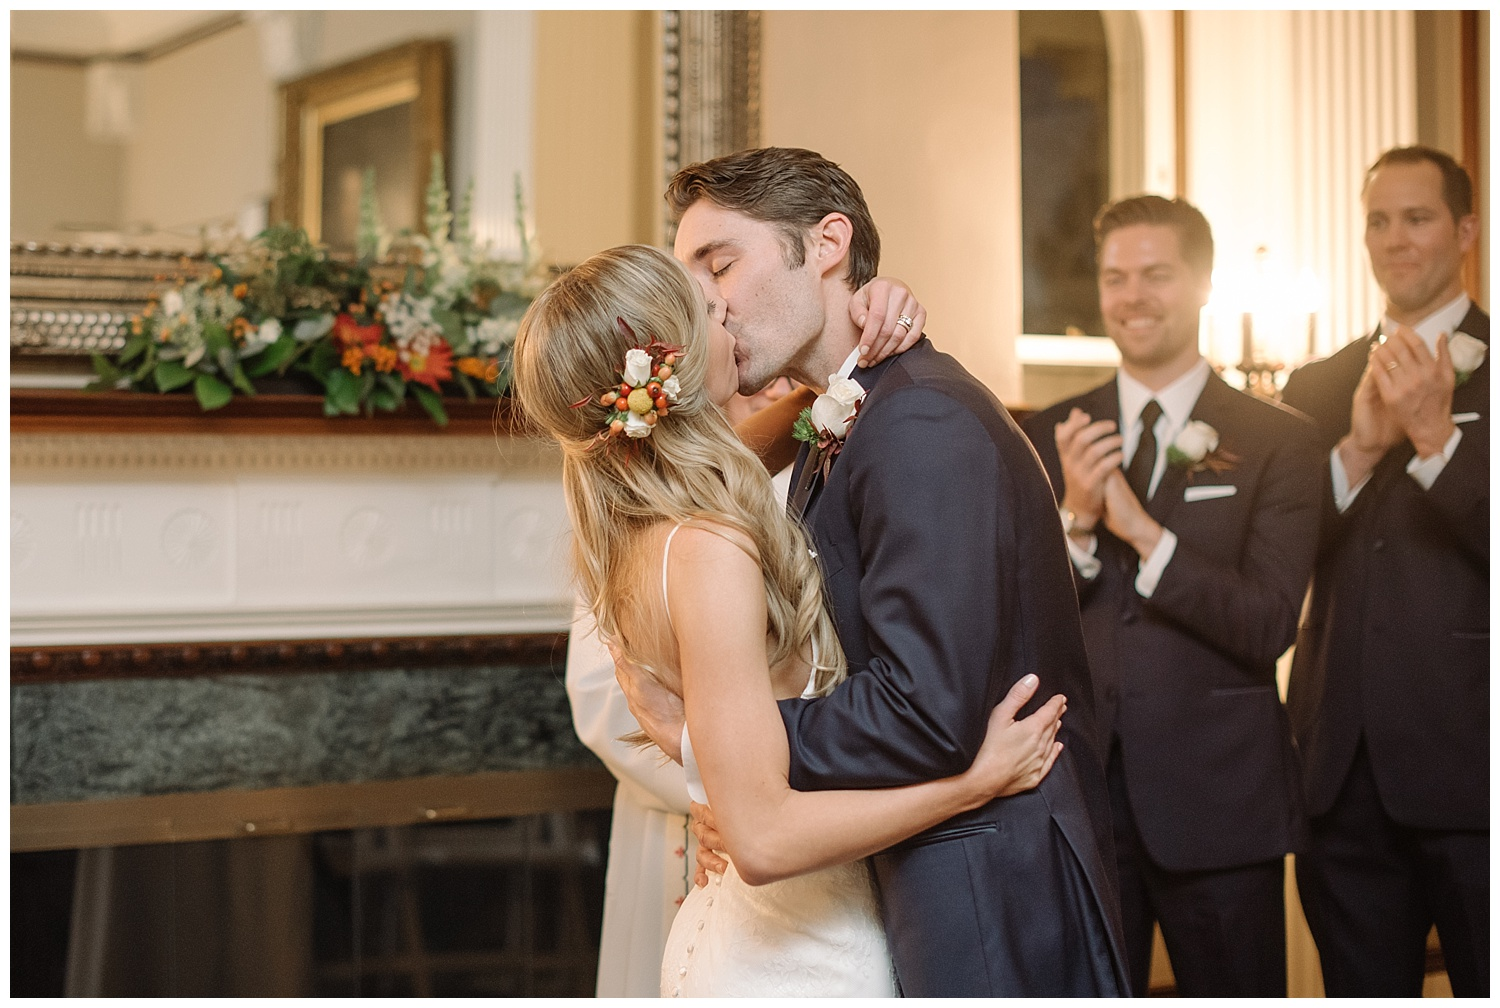 Bride Kissing Groom | Lindsey and Jeff's Intimate Wedding at Grant Humphrey's Mansion | Denver Colorado Photographer | Farm Wedding Photographer | Apollo Fields Wedding Photojournalism